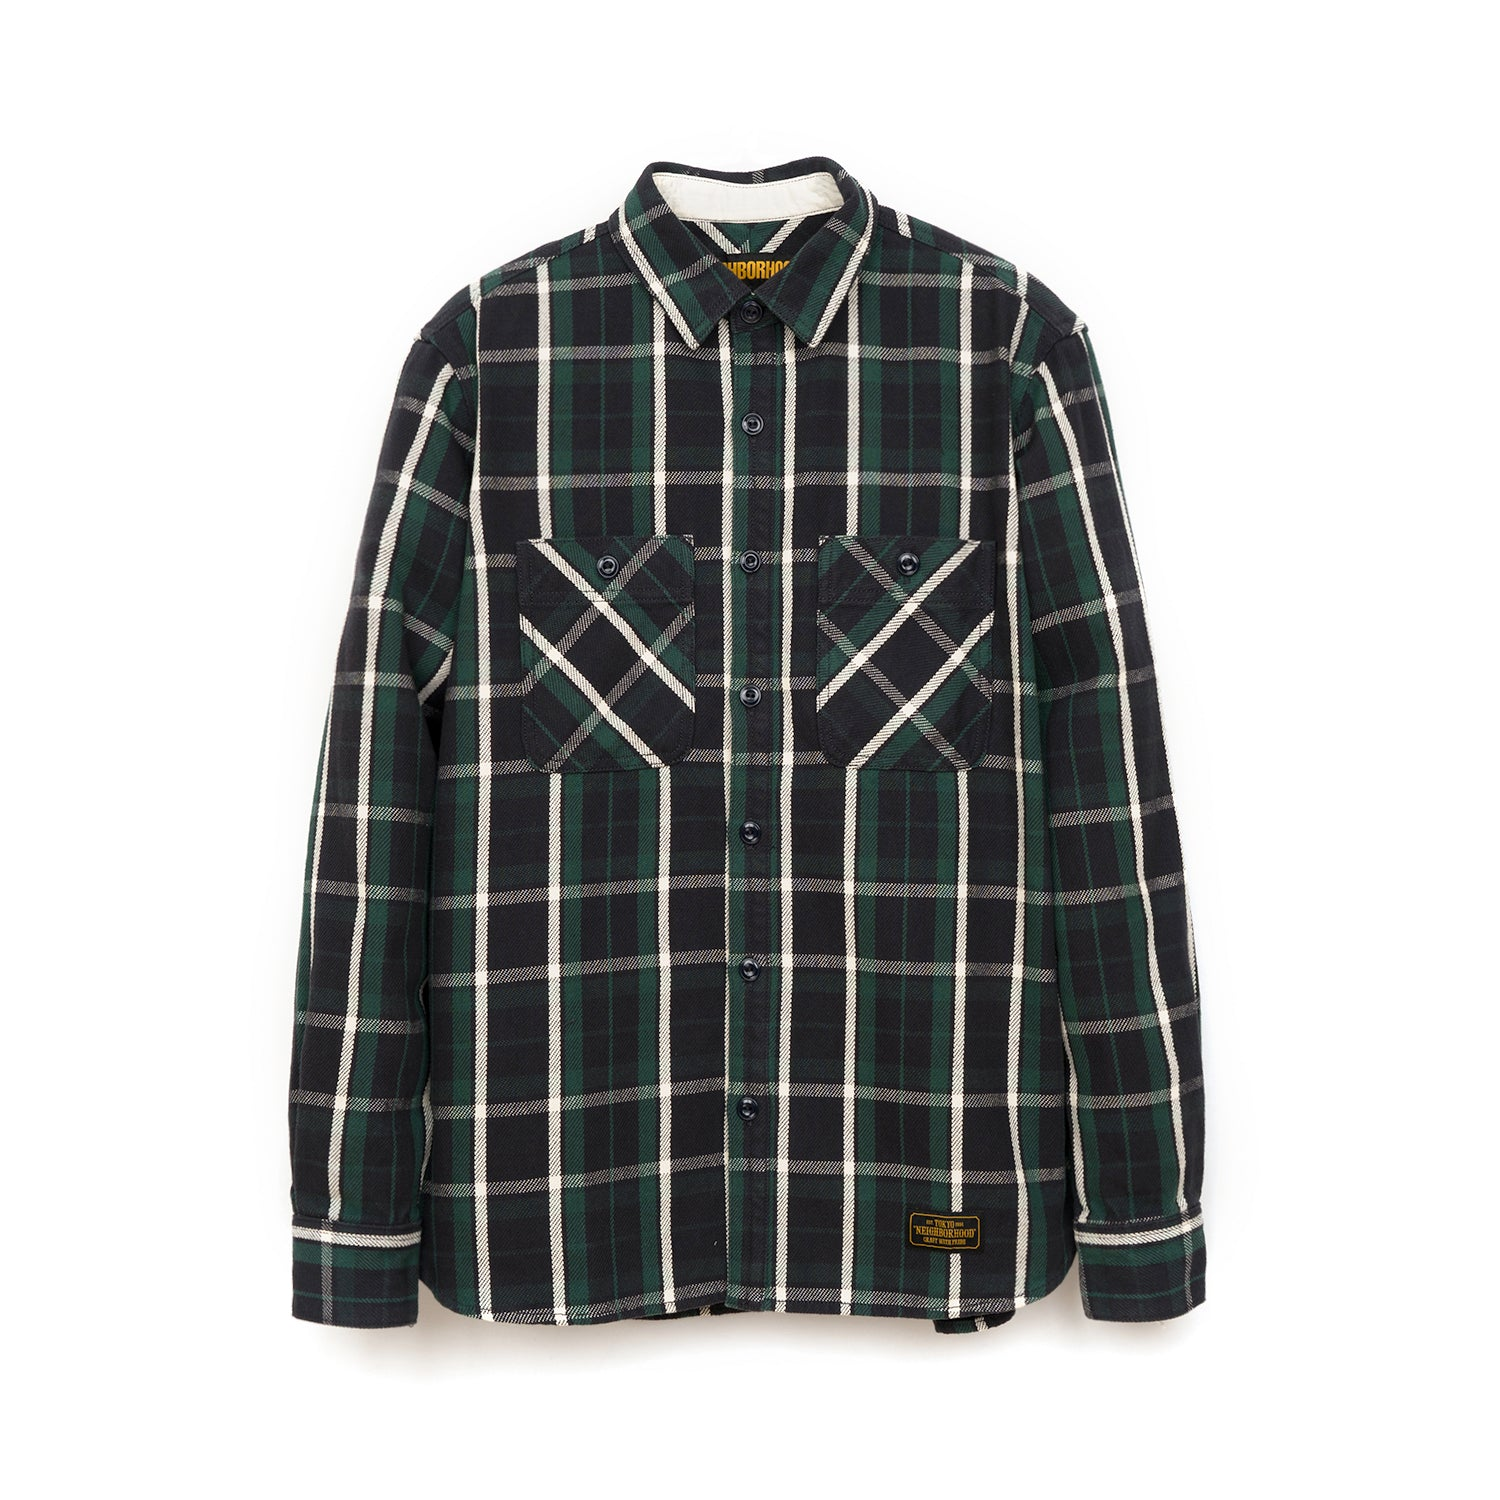 NEIGHBORHOOD 'Lumbers' C-Shirt L/S Green